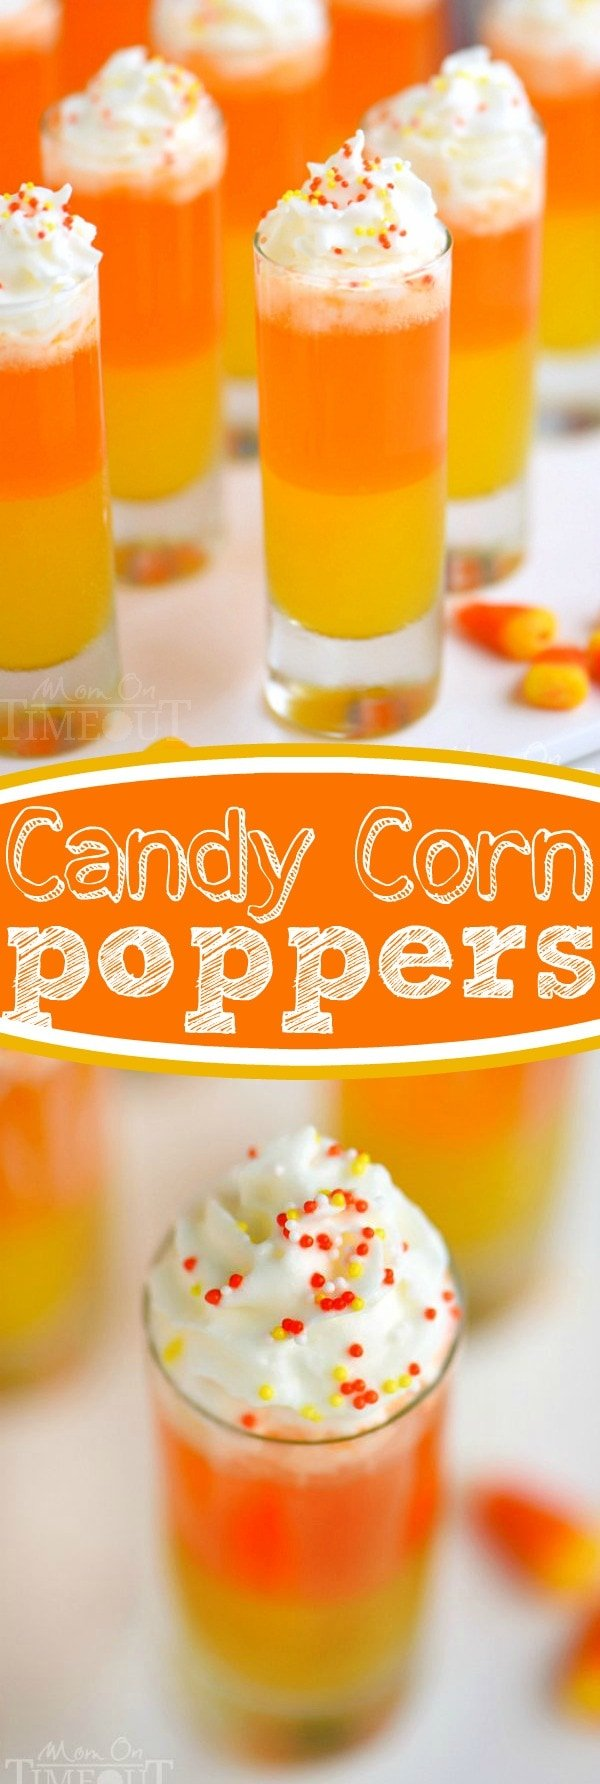 These Candy Corn Poppers are the perfect sweet drink for kids of all ages! Super easy to make and so fun too! This layered drink is impressive and EASY! // Mom On Timeout